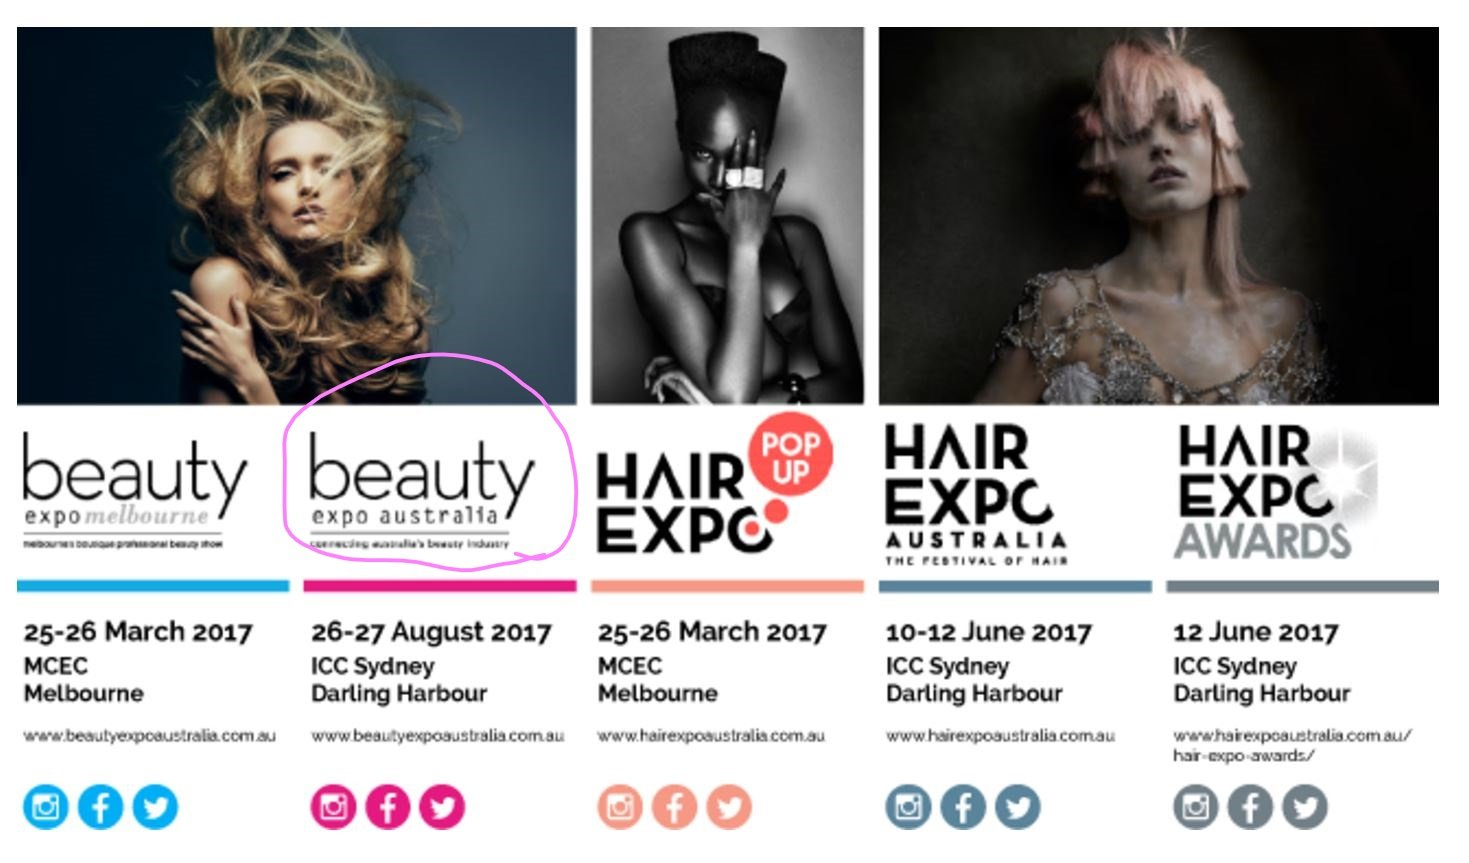 REGNE™ at the Beauty Expo Australia 2017